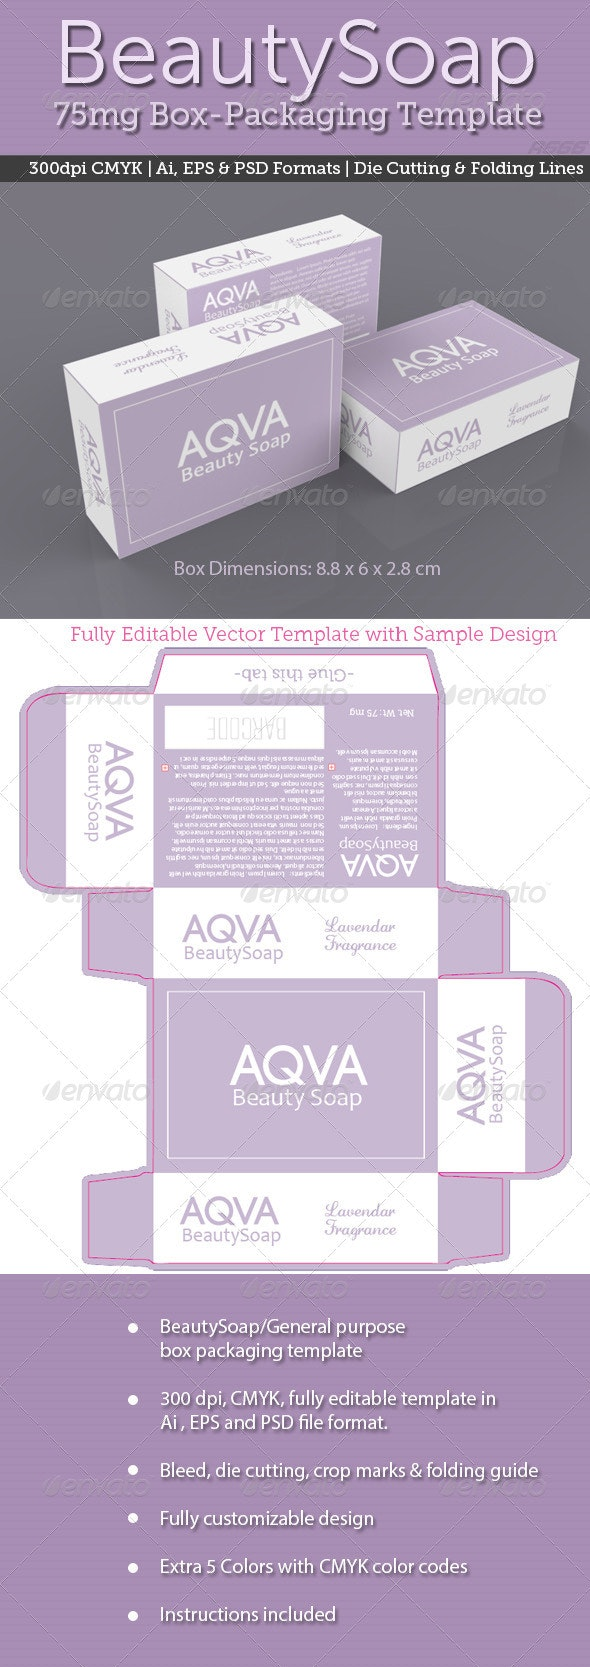 BeautySoap Box Packaging Template - Packaging Print Templates